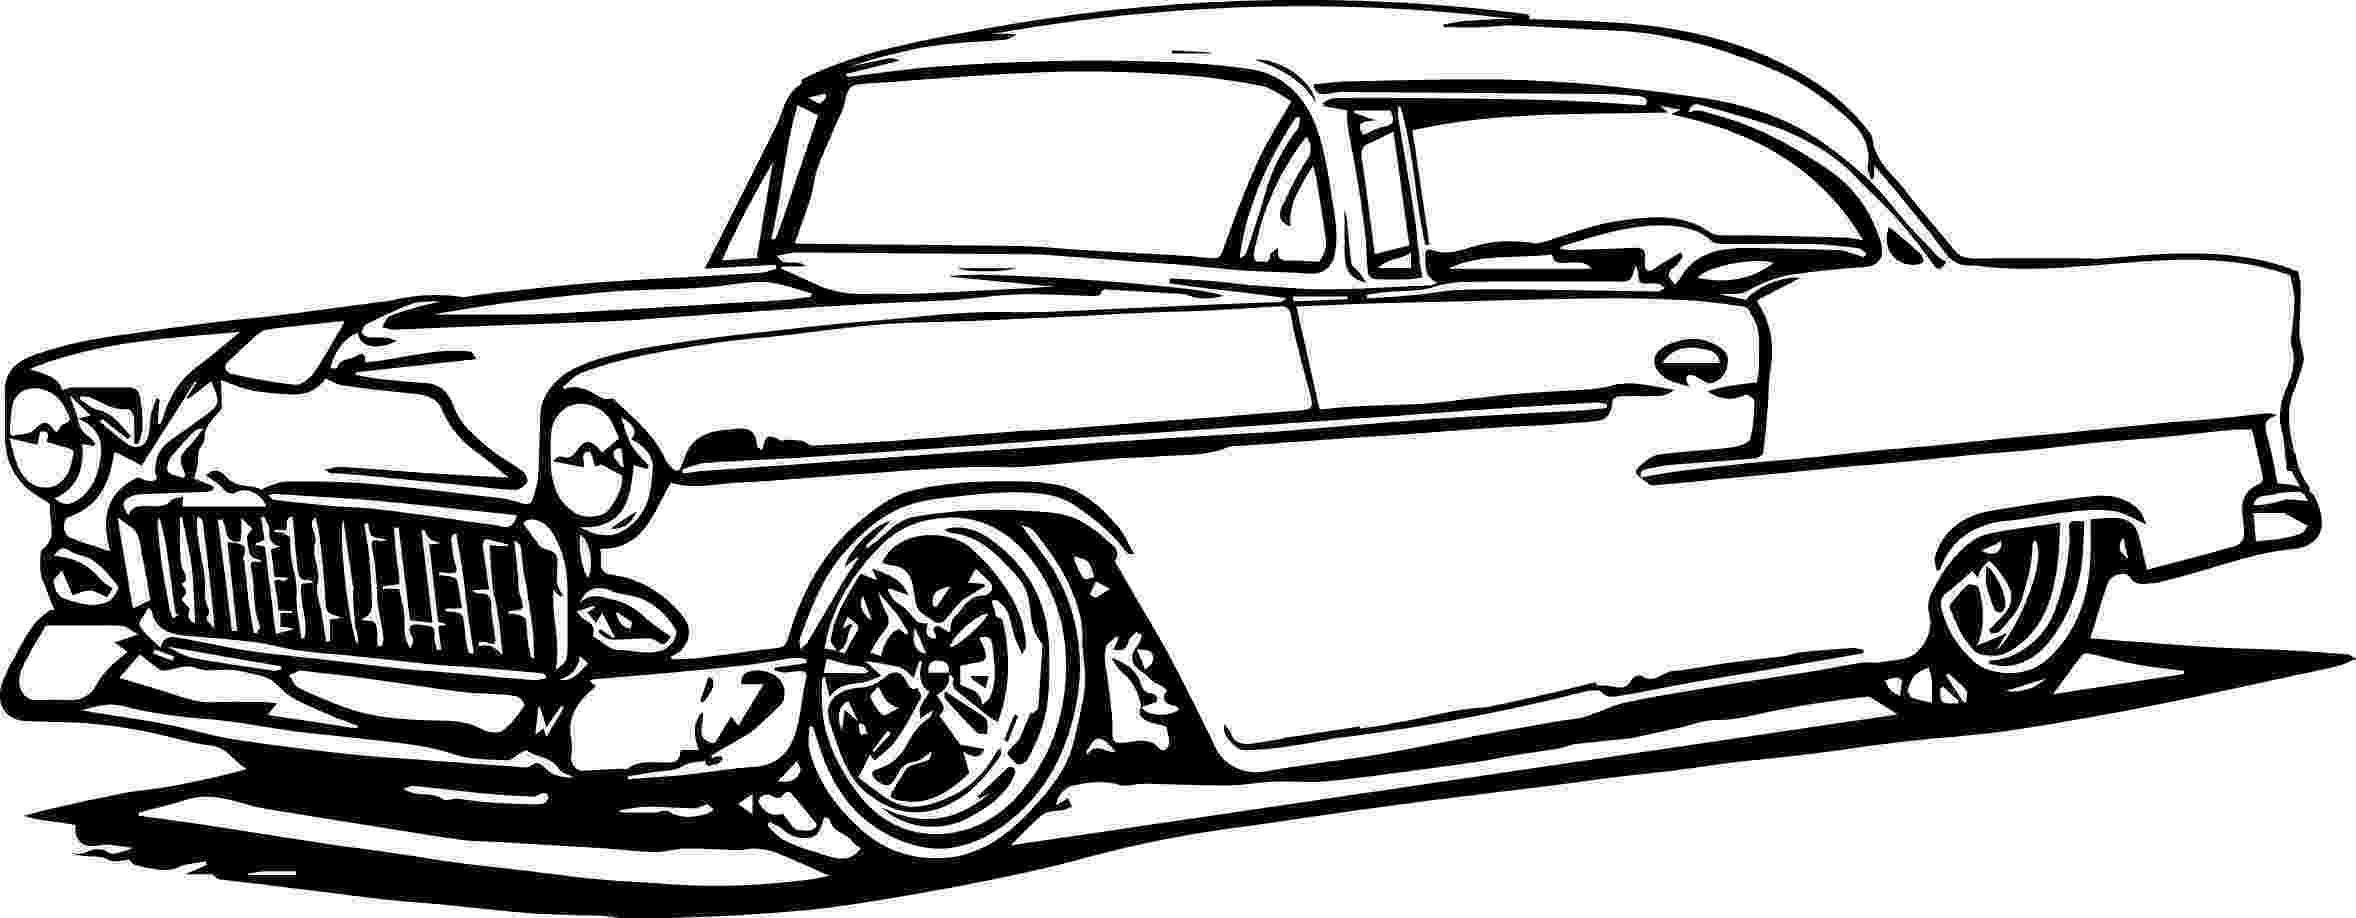 colouring pages for adults cars antique car coloring pages cars coloring pages truck cars pages for adults colouring